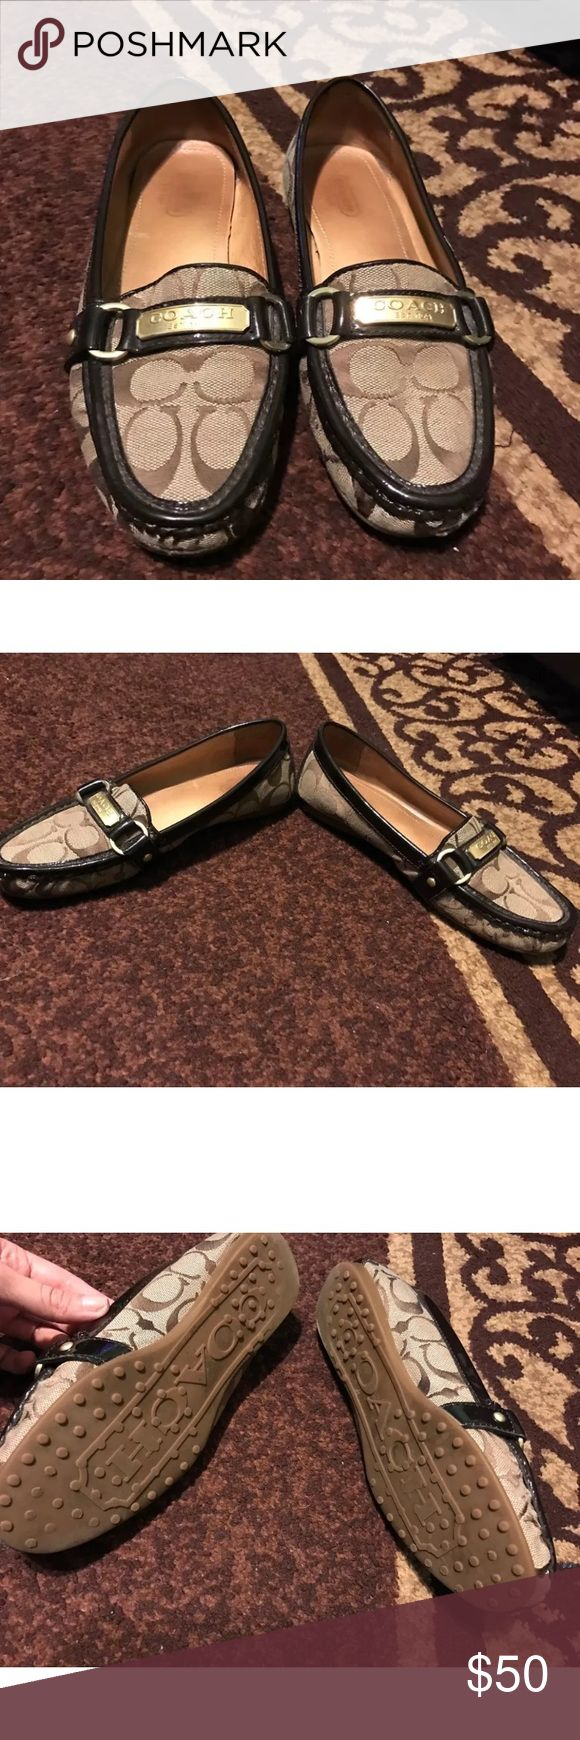 ♦️FINAL PRICE♦️ coach flats Preowned coach flats in great condition 😊 Coach Shoes Flats & Loafers